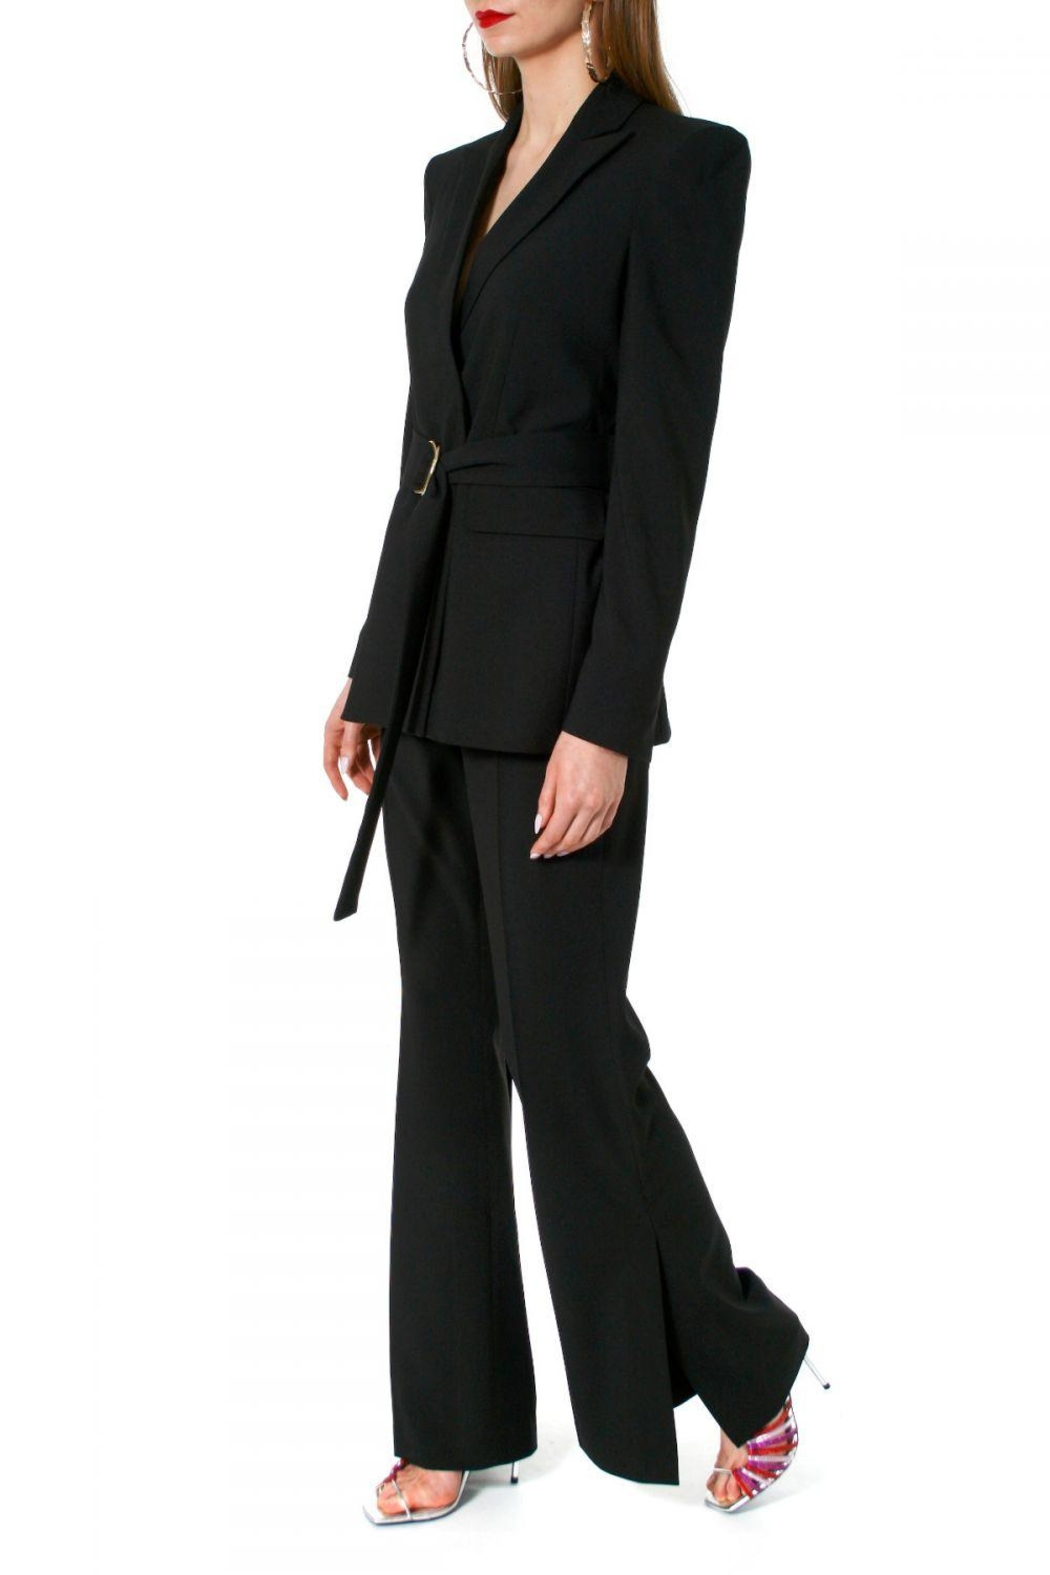 AGGI Pants Camilla Neutral Black - Front Cropped Image